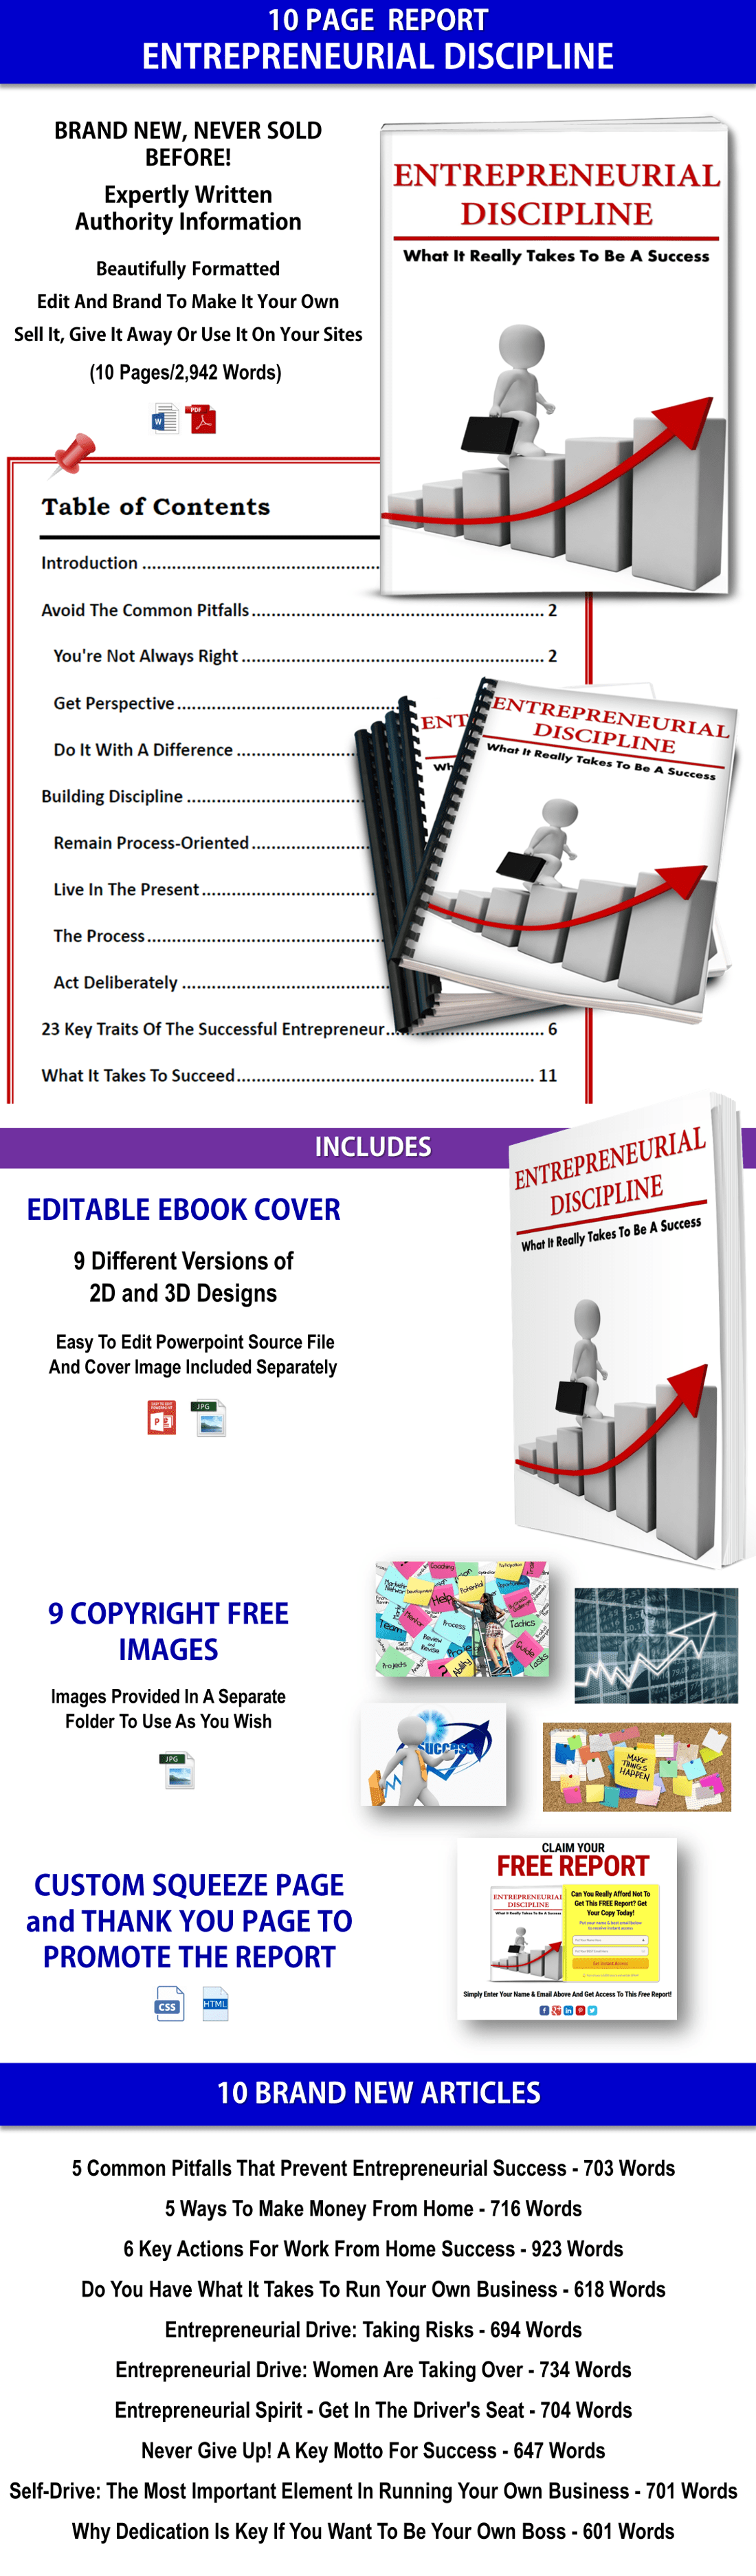 Entrepreneurial Discipline Report & Articles PLR